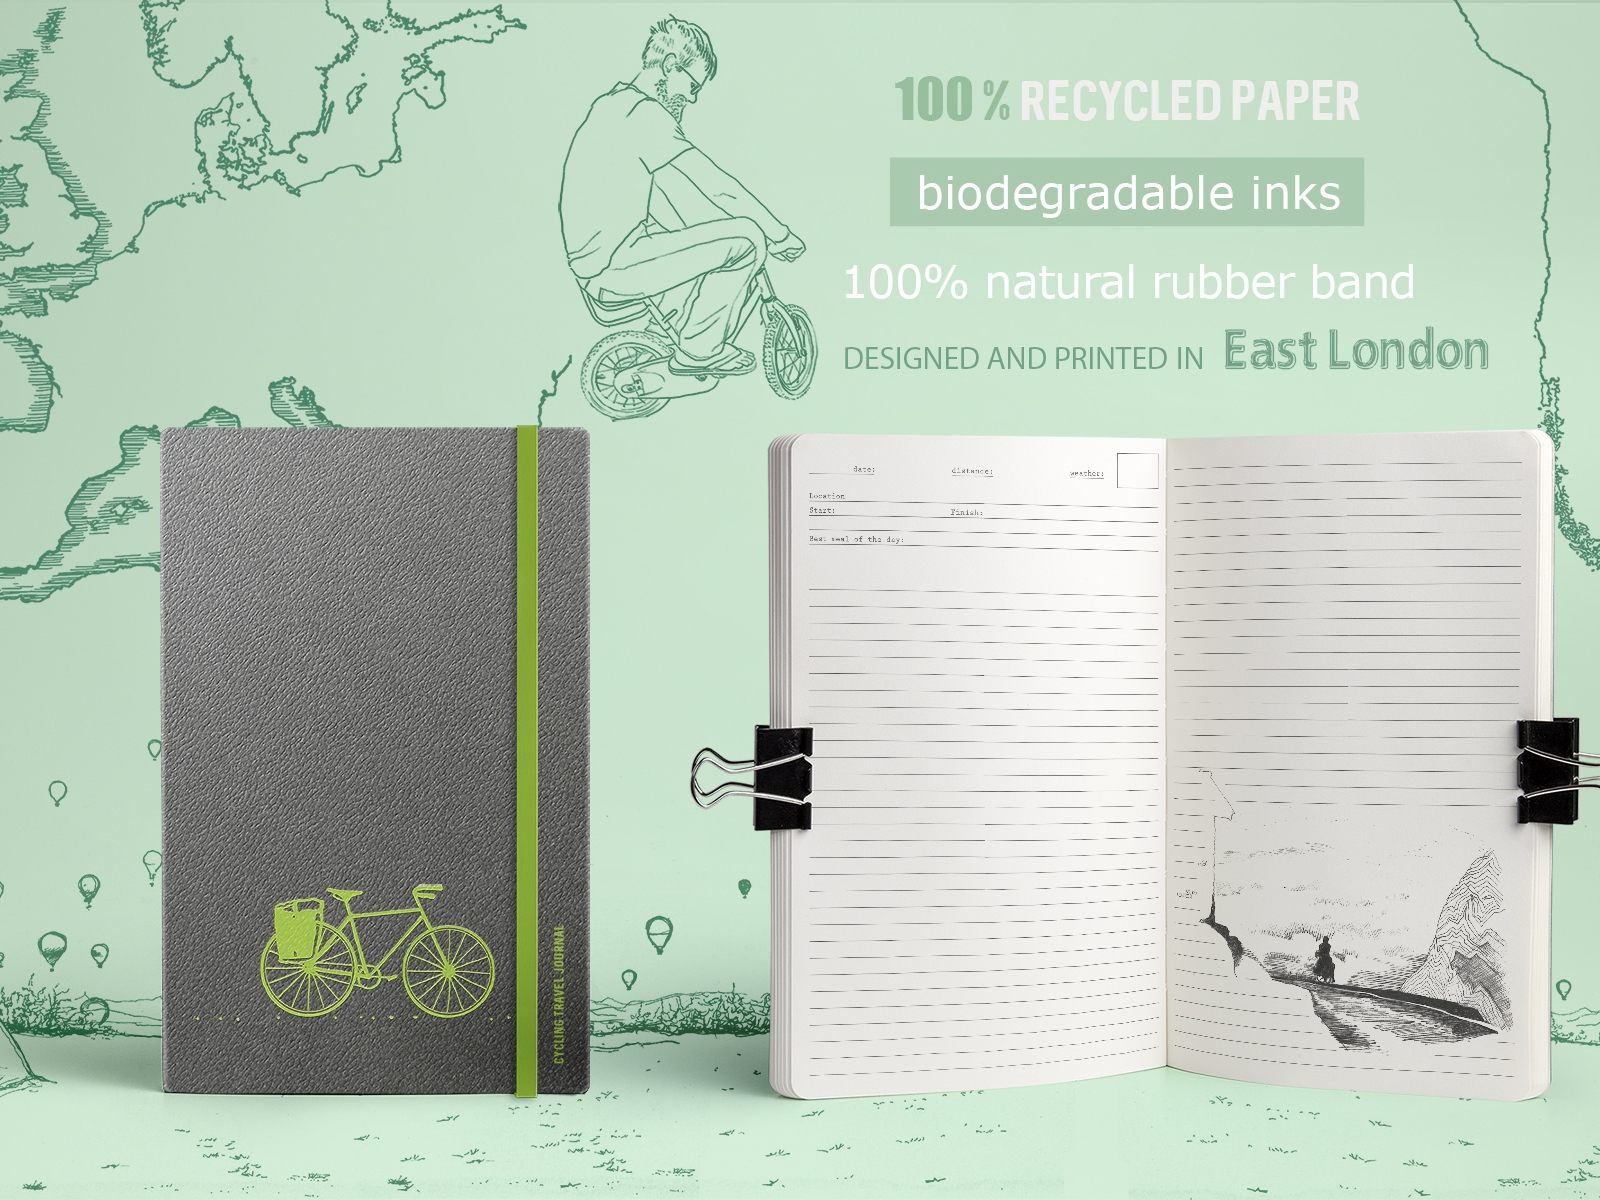 Cycling Travel Journal  £20  If your holidays are more about sights from the saddle than beach dwelling, this eco-friendly cycling travel journal makes an awesome gift. Designed by a cycle tourer and artist, it's a place for you to quickly and creatively capture your own adventures. It's also bursting with beautiful illustrations, recipes and motivational quotes, plus it's sustainably and ethically produced.